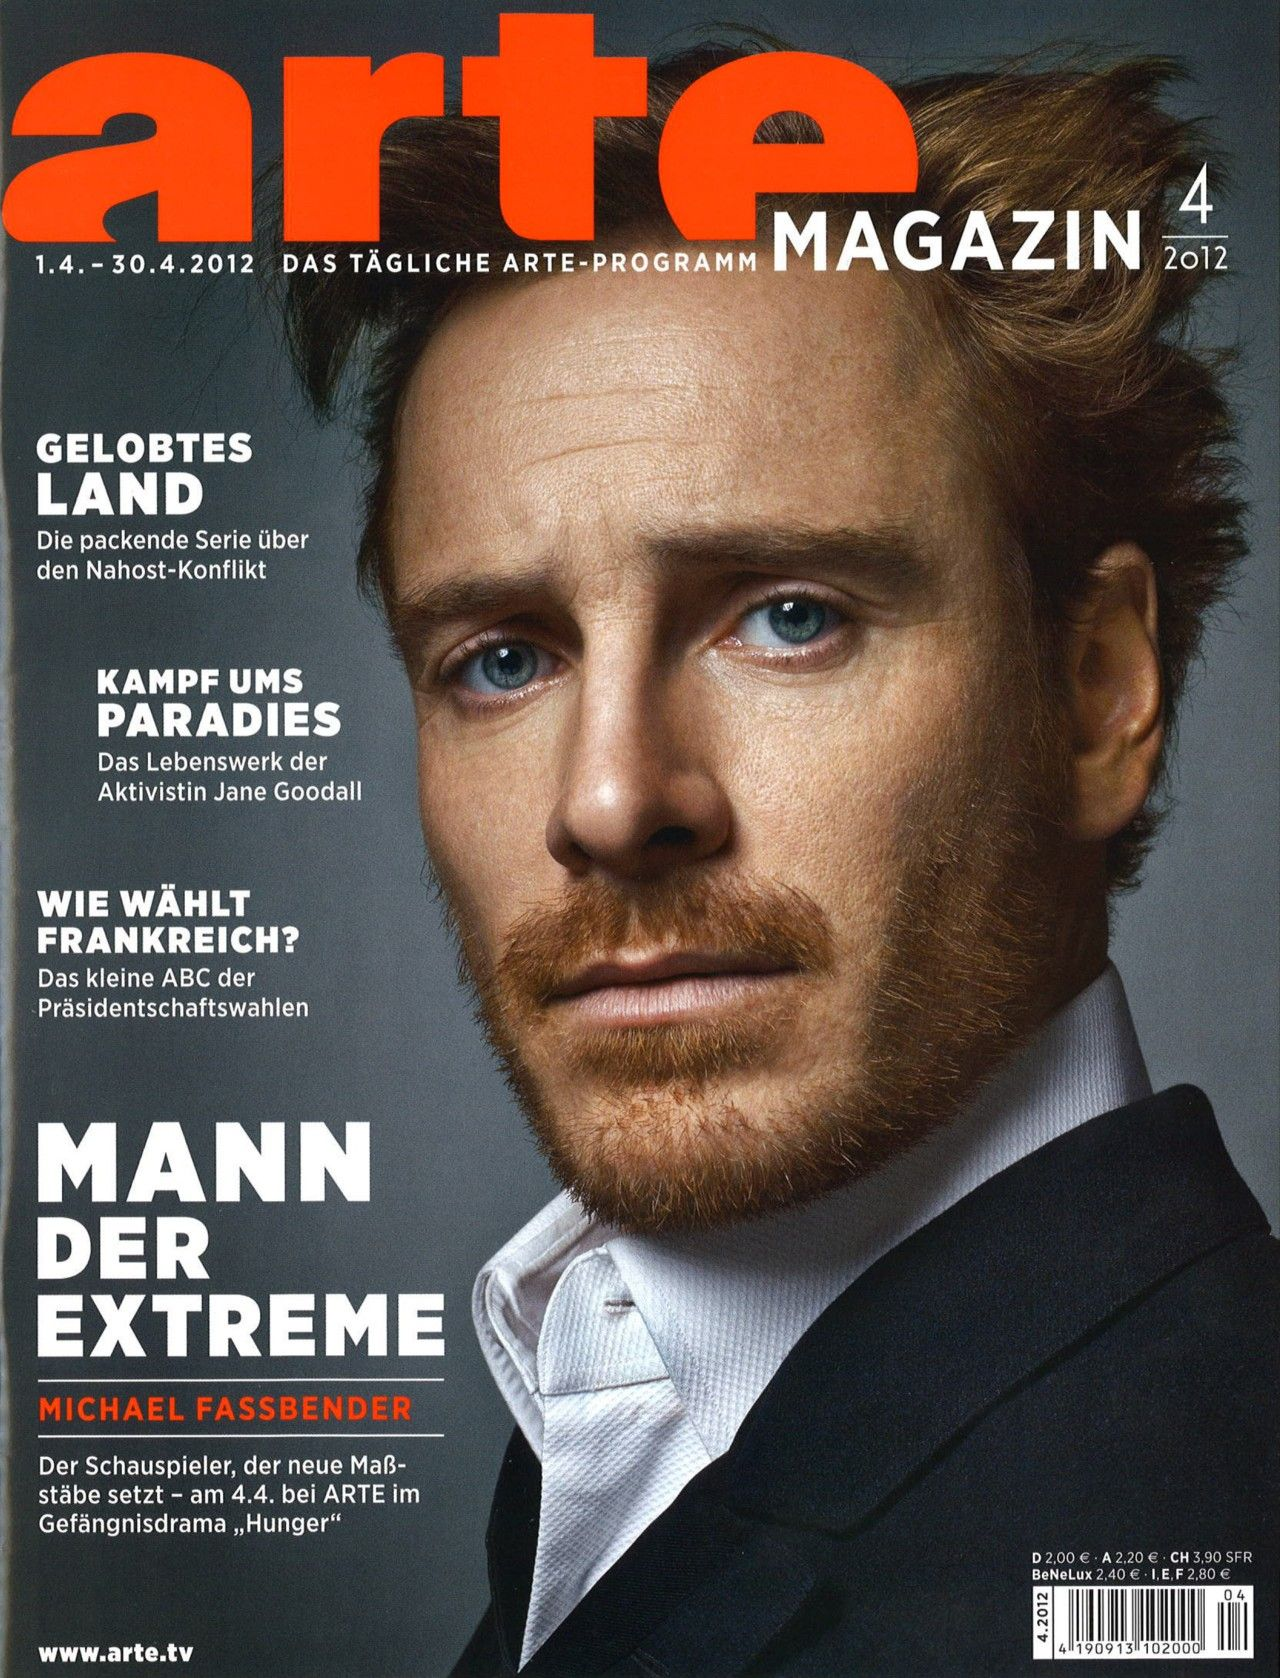 Arte Journal Programm Michael Fassbender Arte Magazin Magazine April 2012 Cover Photo